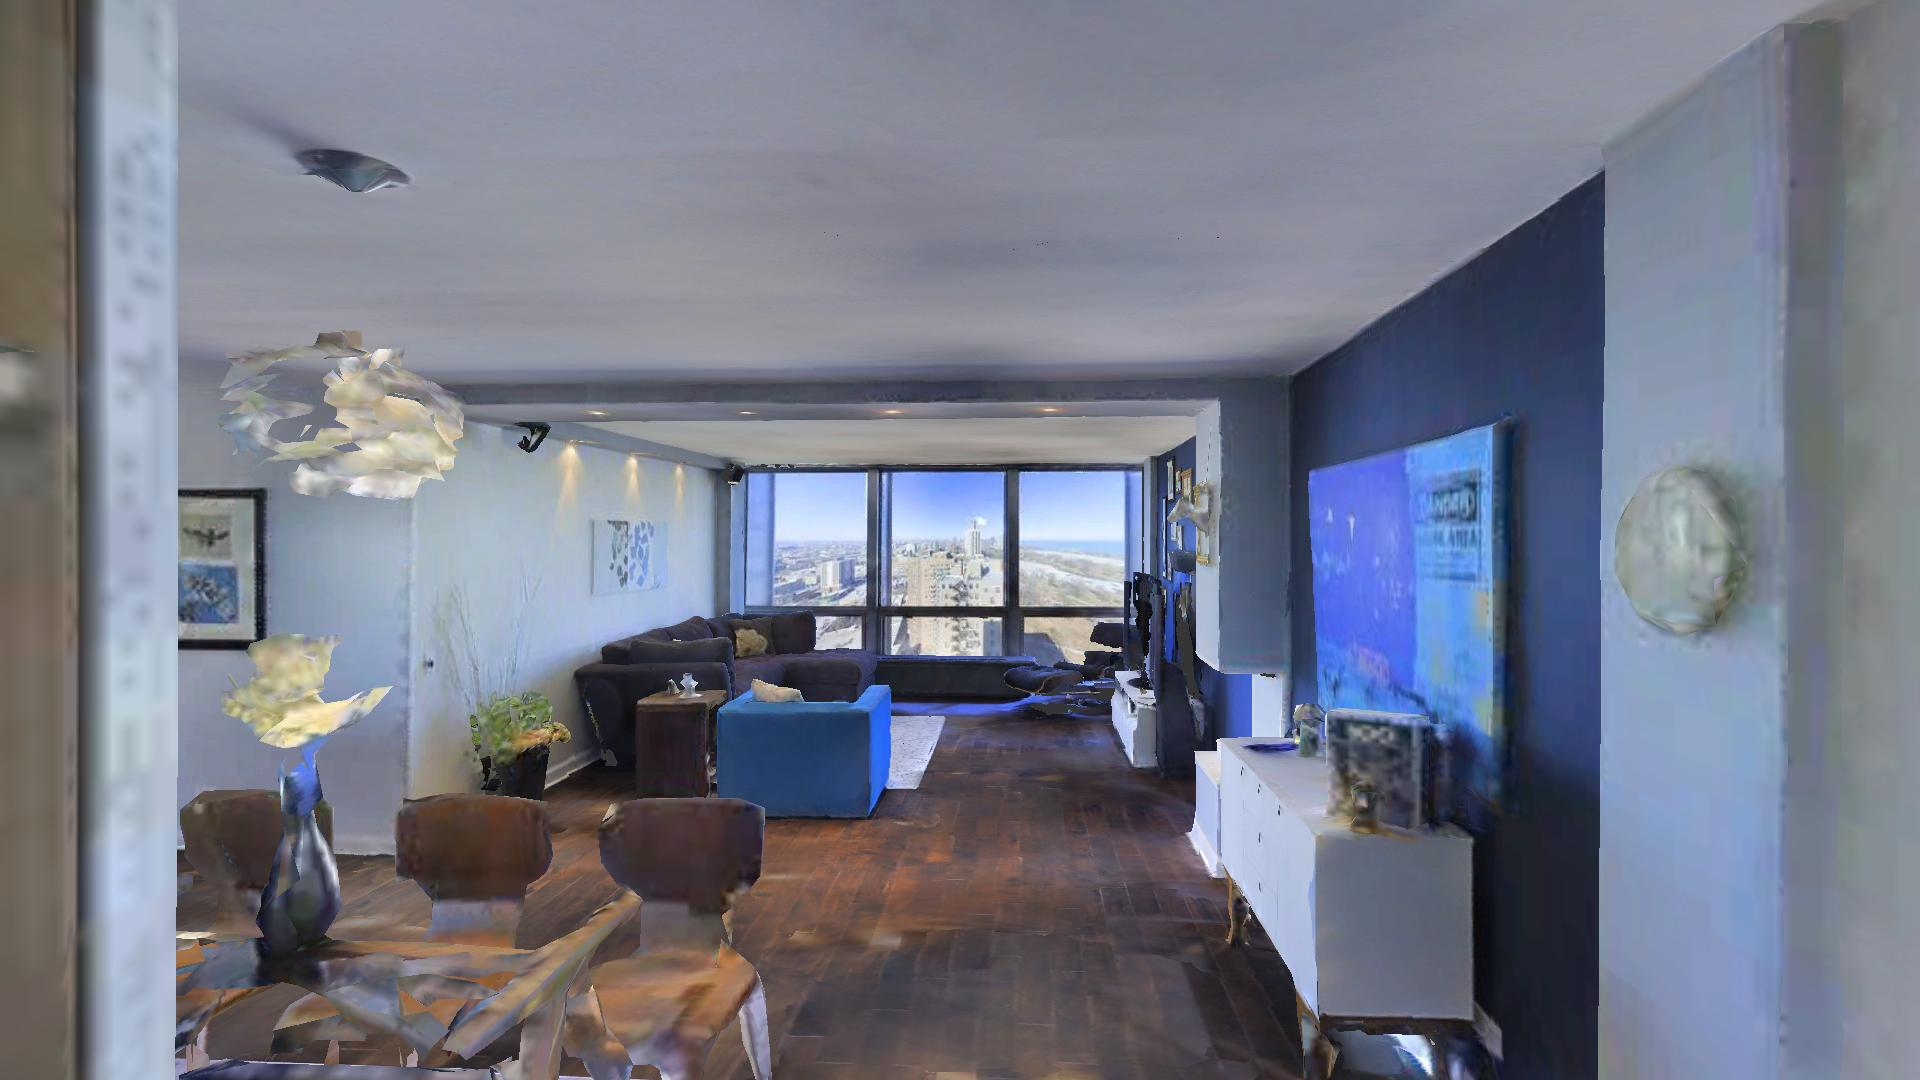 2400 N Lakeview Floor Plans: 2400 N Lakeview Ave #2906, CHICAGO, IL 60614